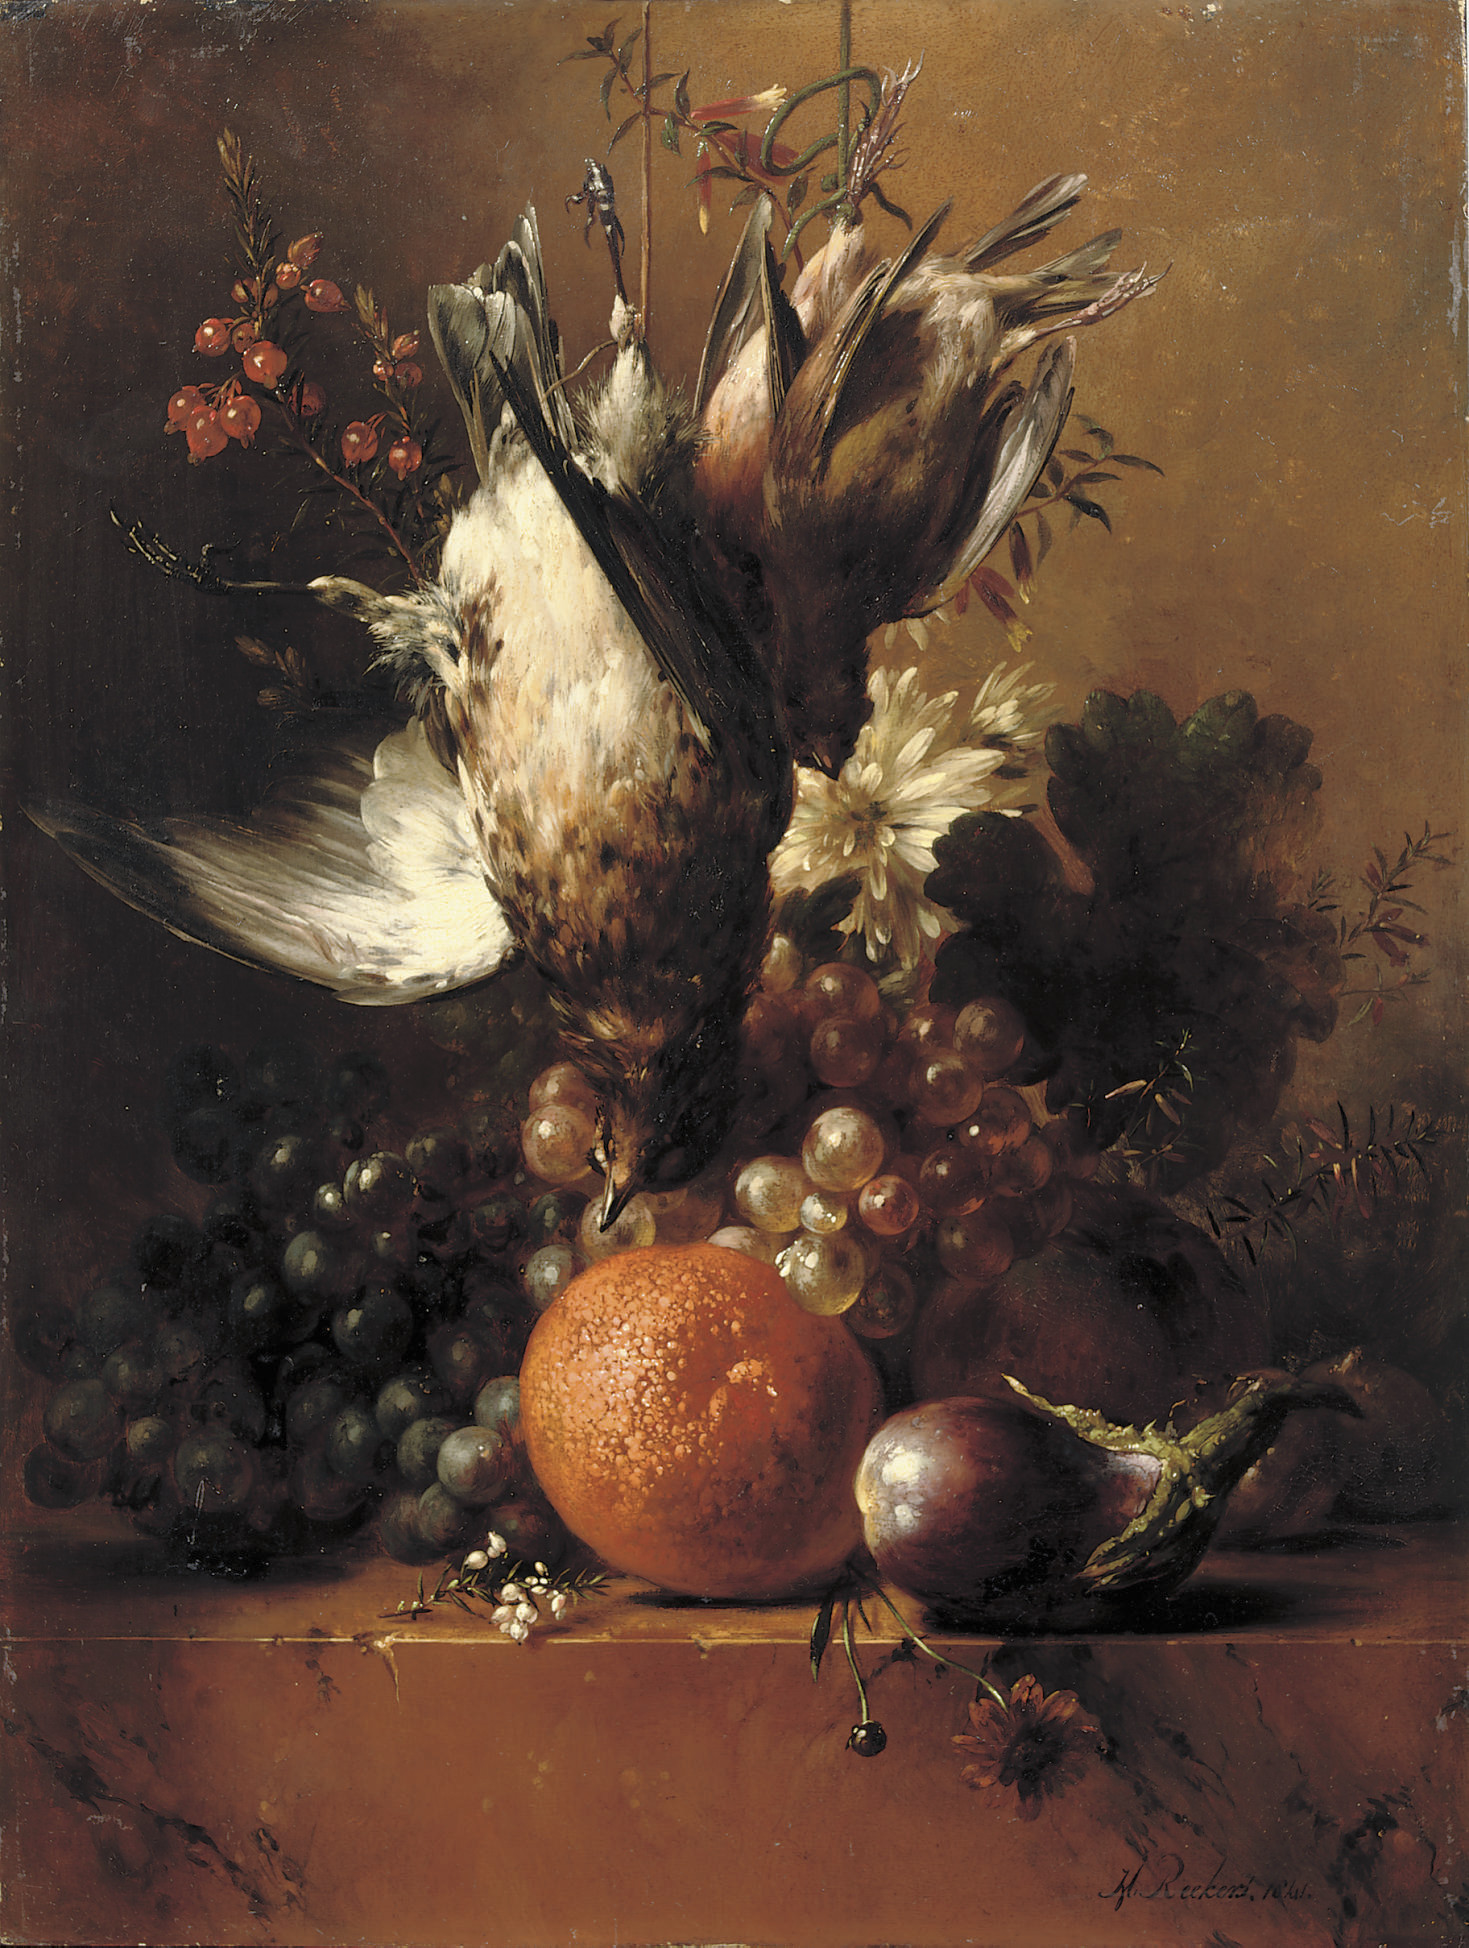 Flowers, fruit and poultry on a ledge